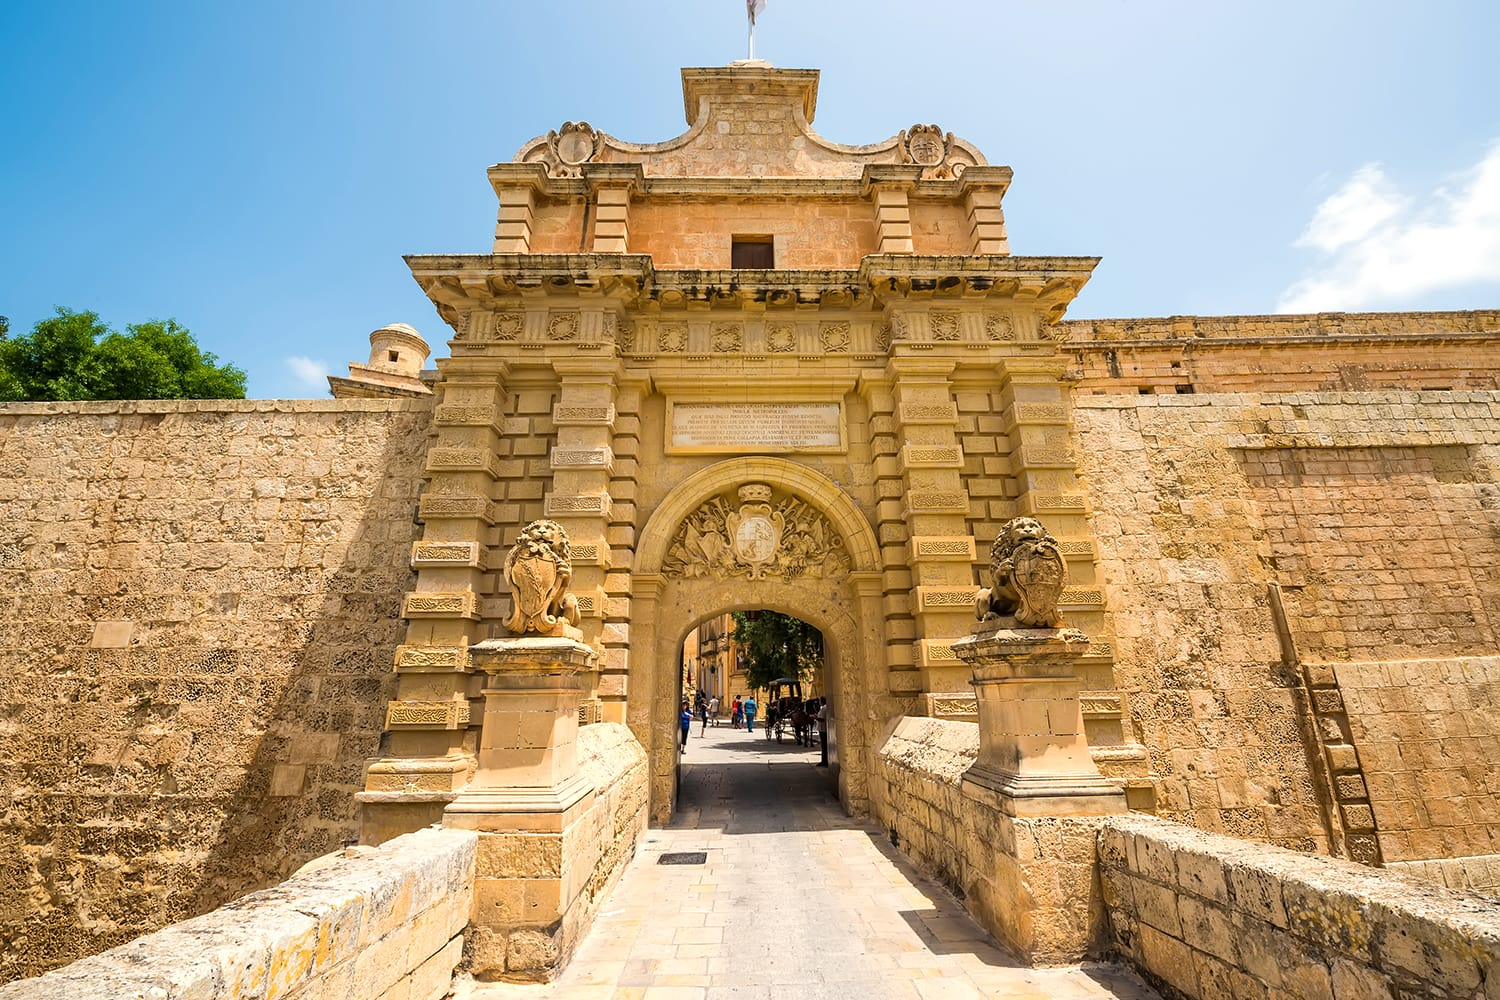 City gate in Mdina, Malta